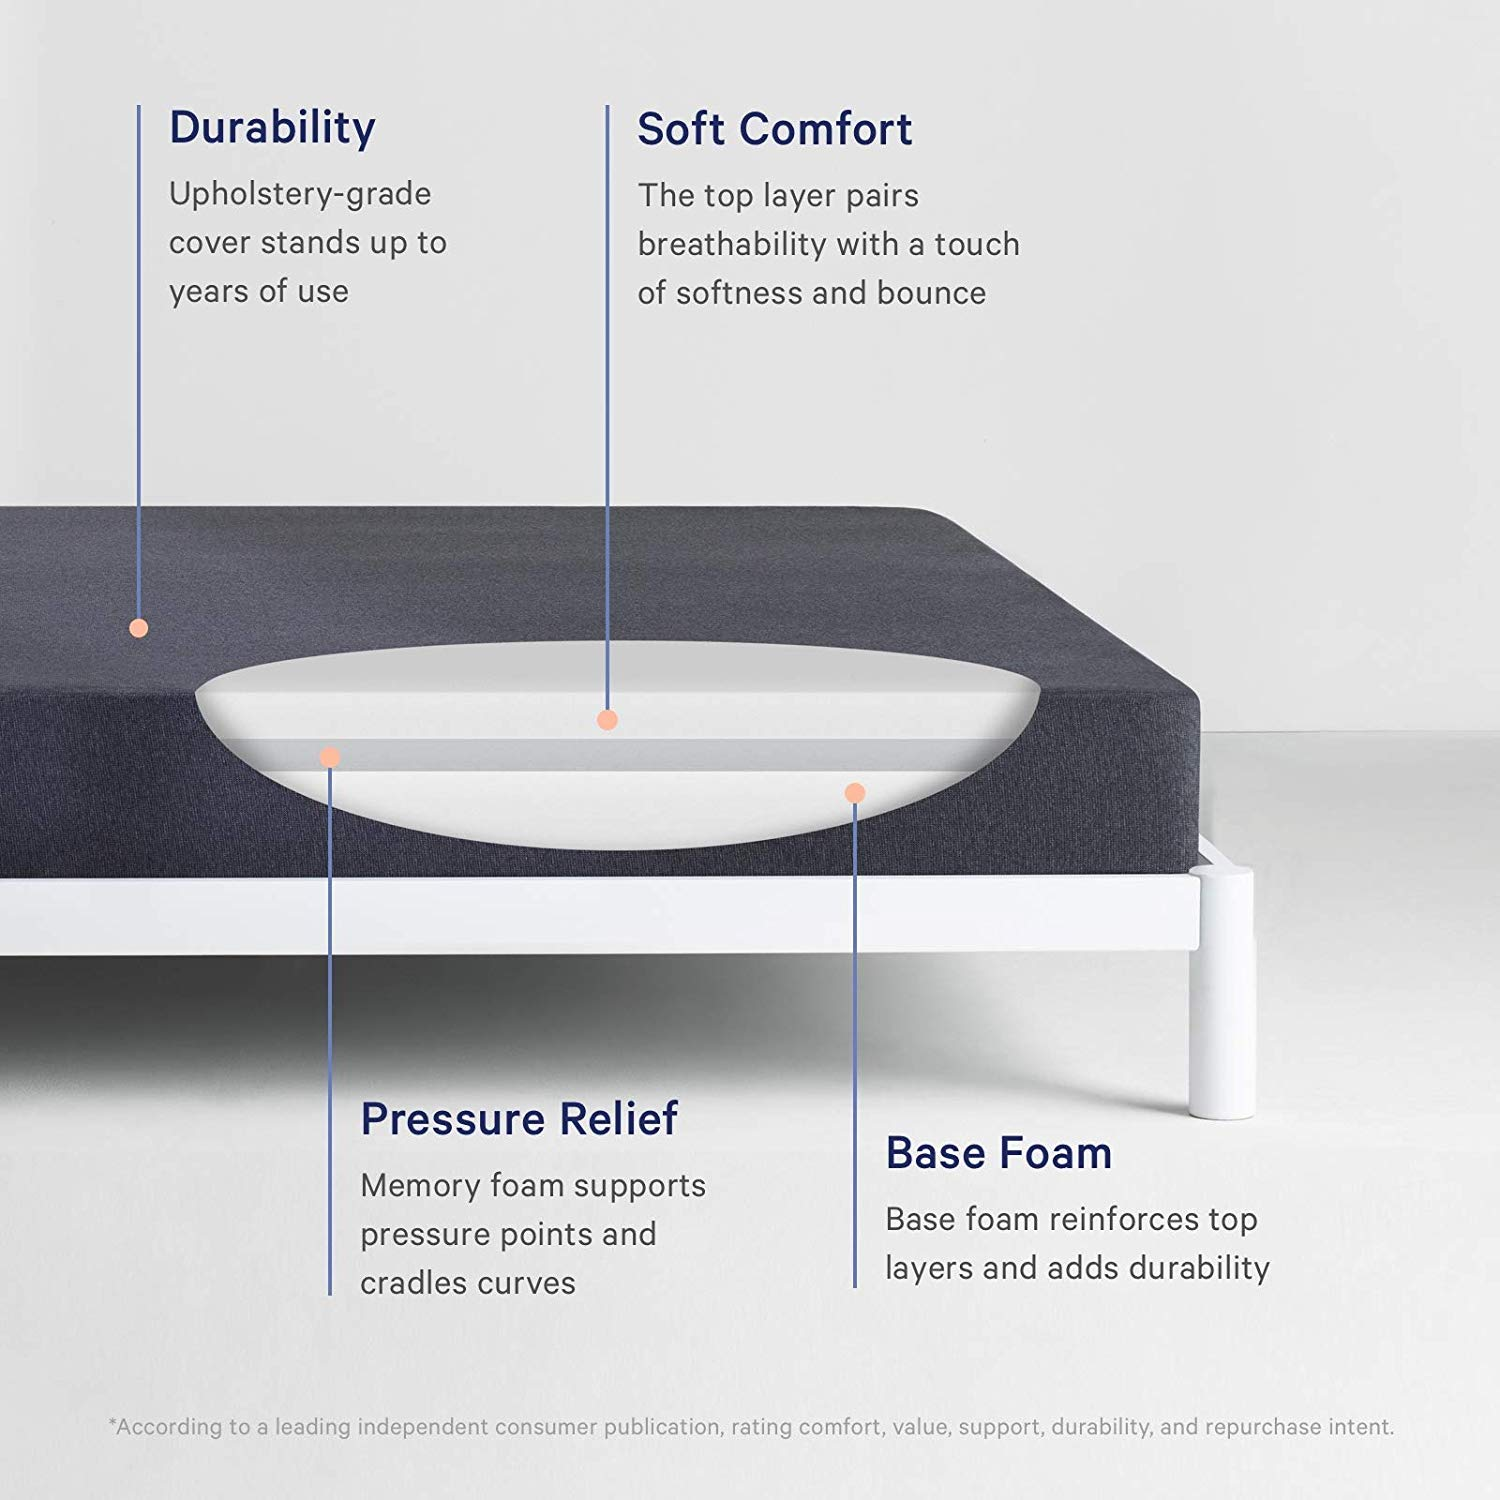 Casper Sleep Mattress Review